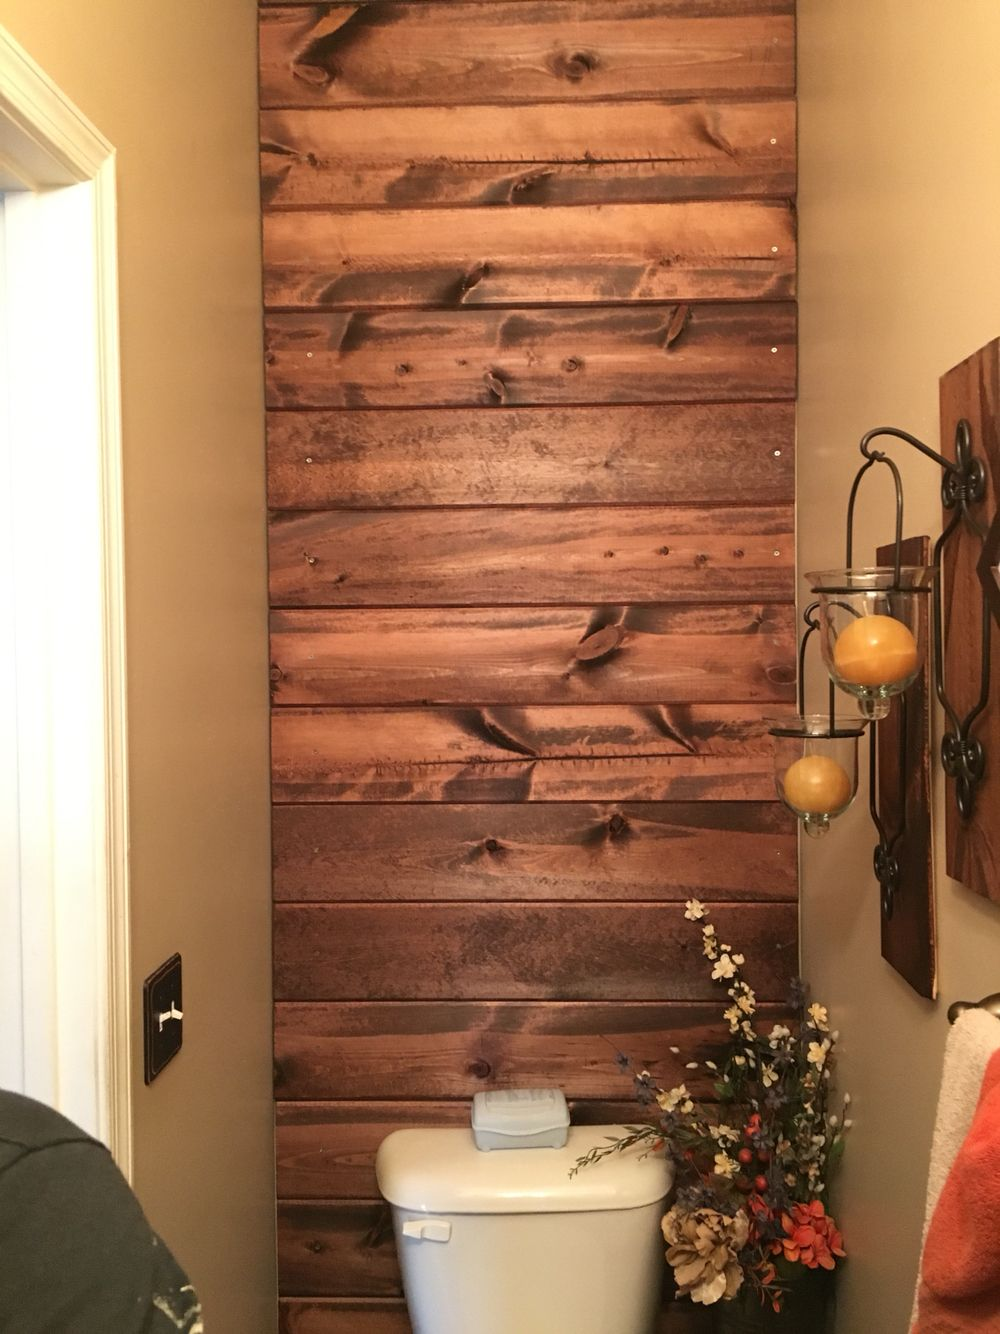 Royal wood tongue and groove panels - Ship Lap Wall Made With Tongue And Groove 1x8 Boards Stained With Red Mahogany Minwax